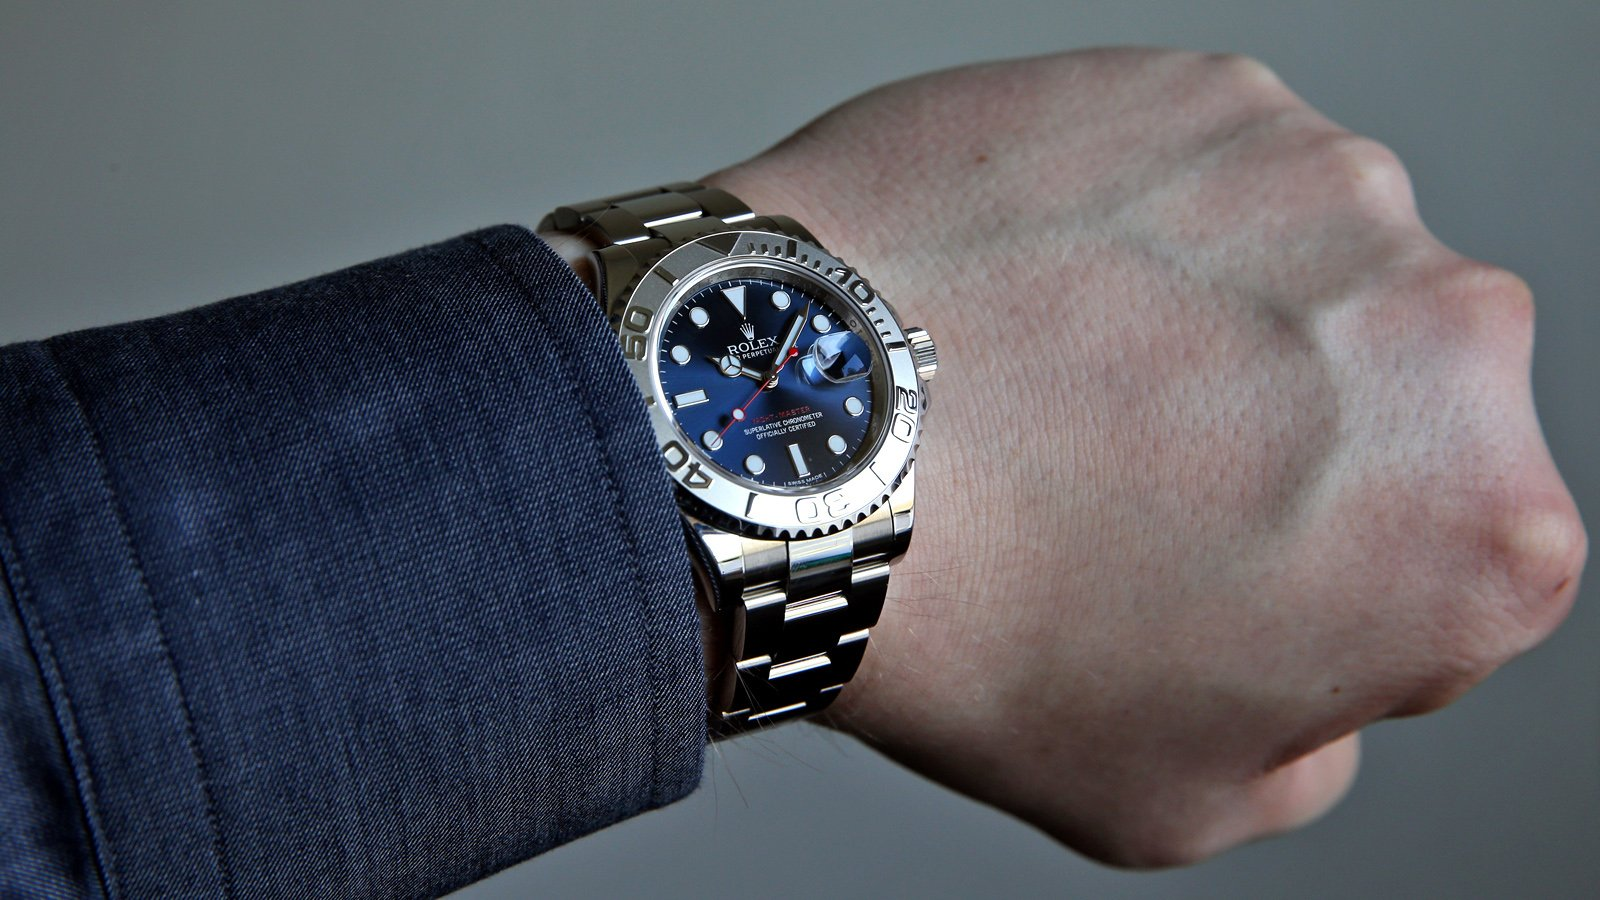 Rolex-Yachtmaster-on-hand.jpg